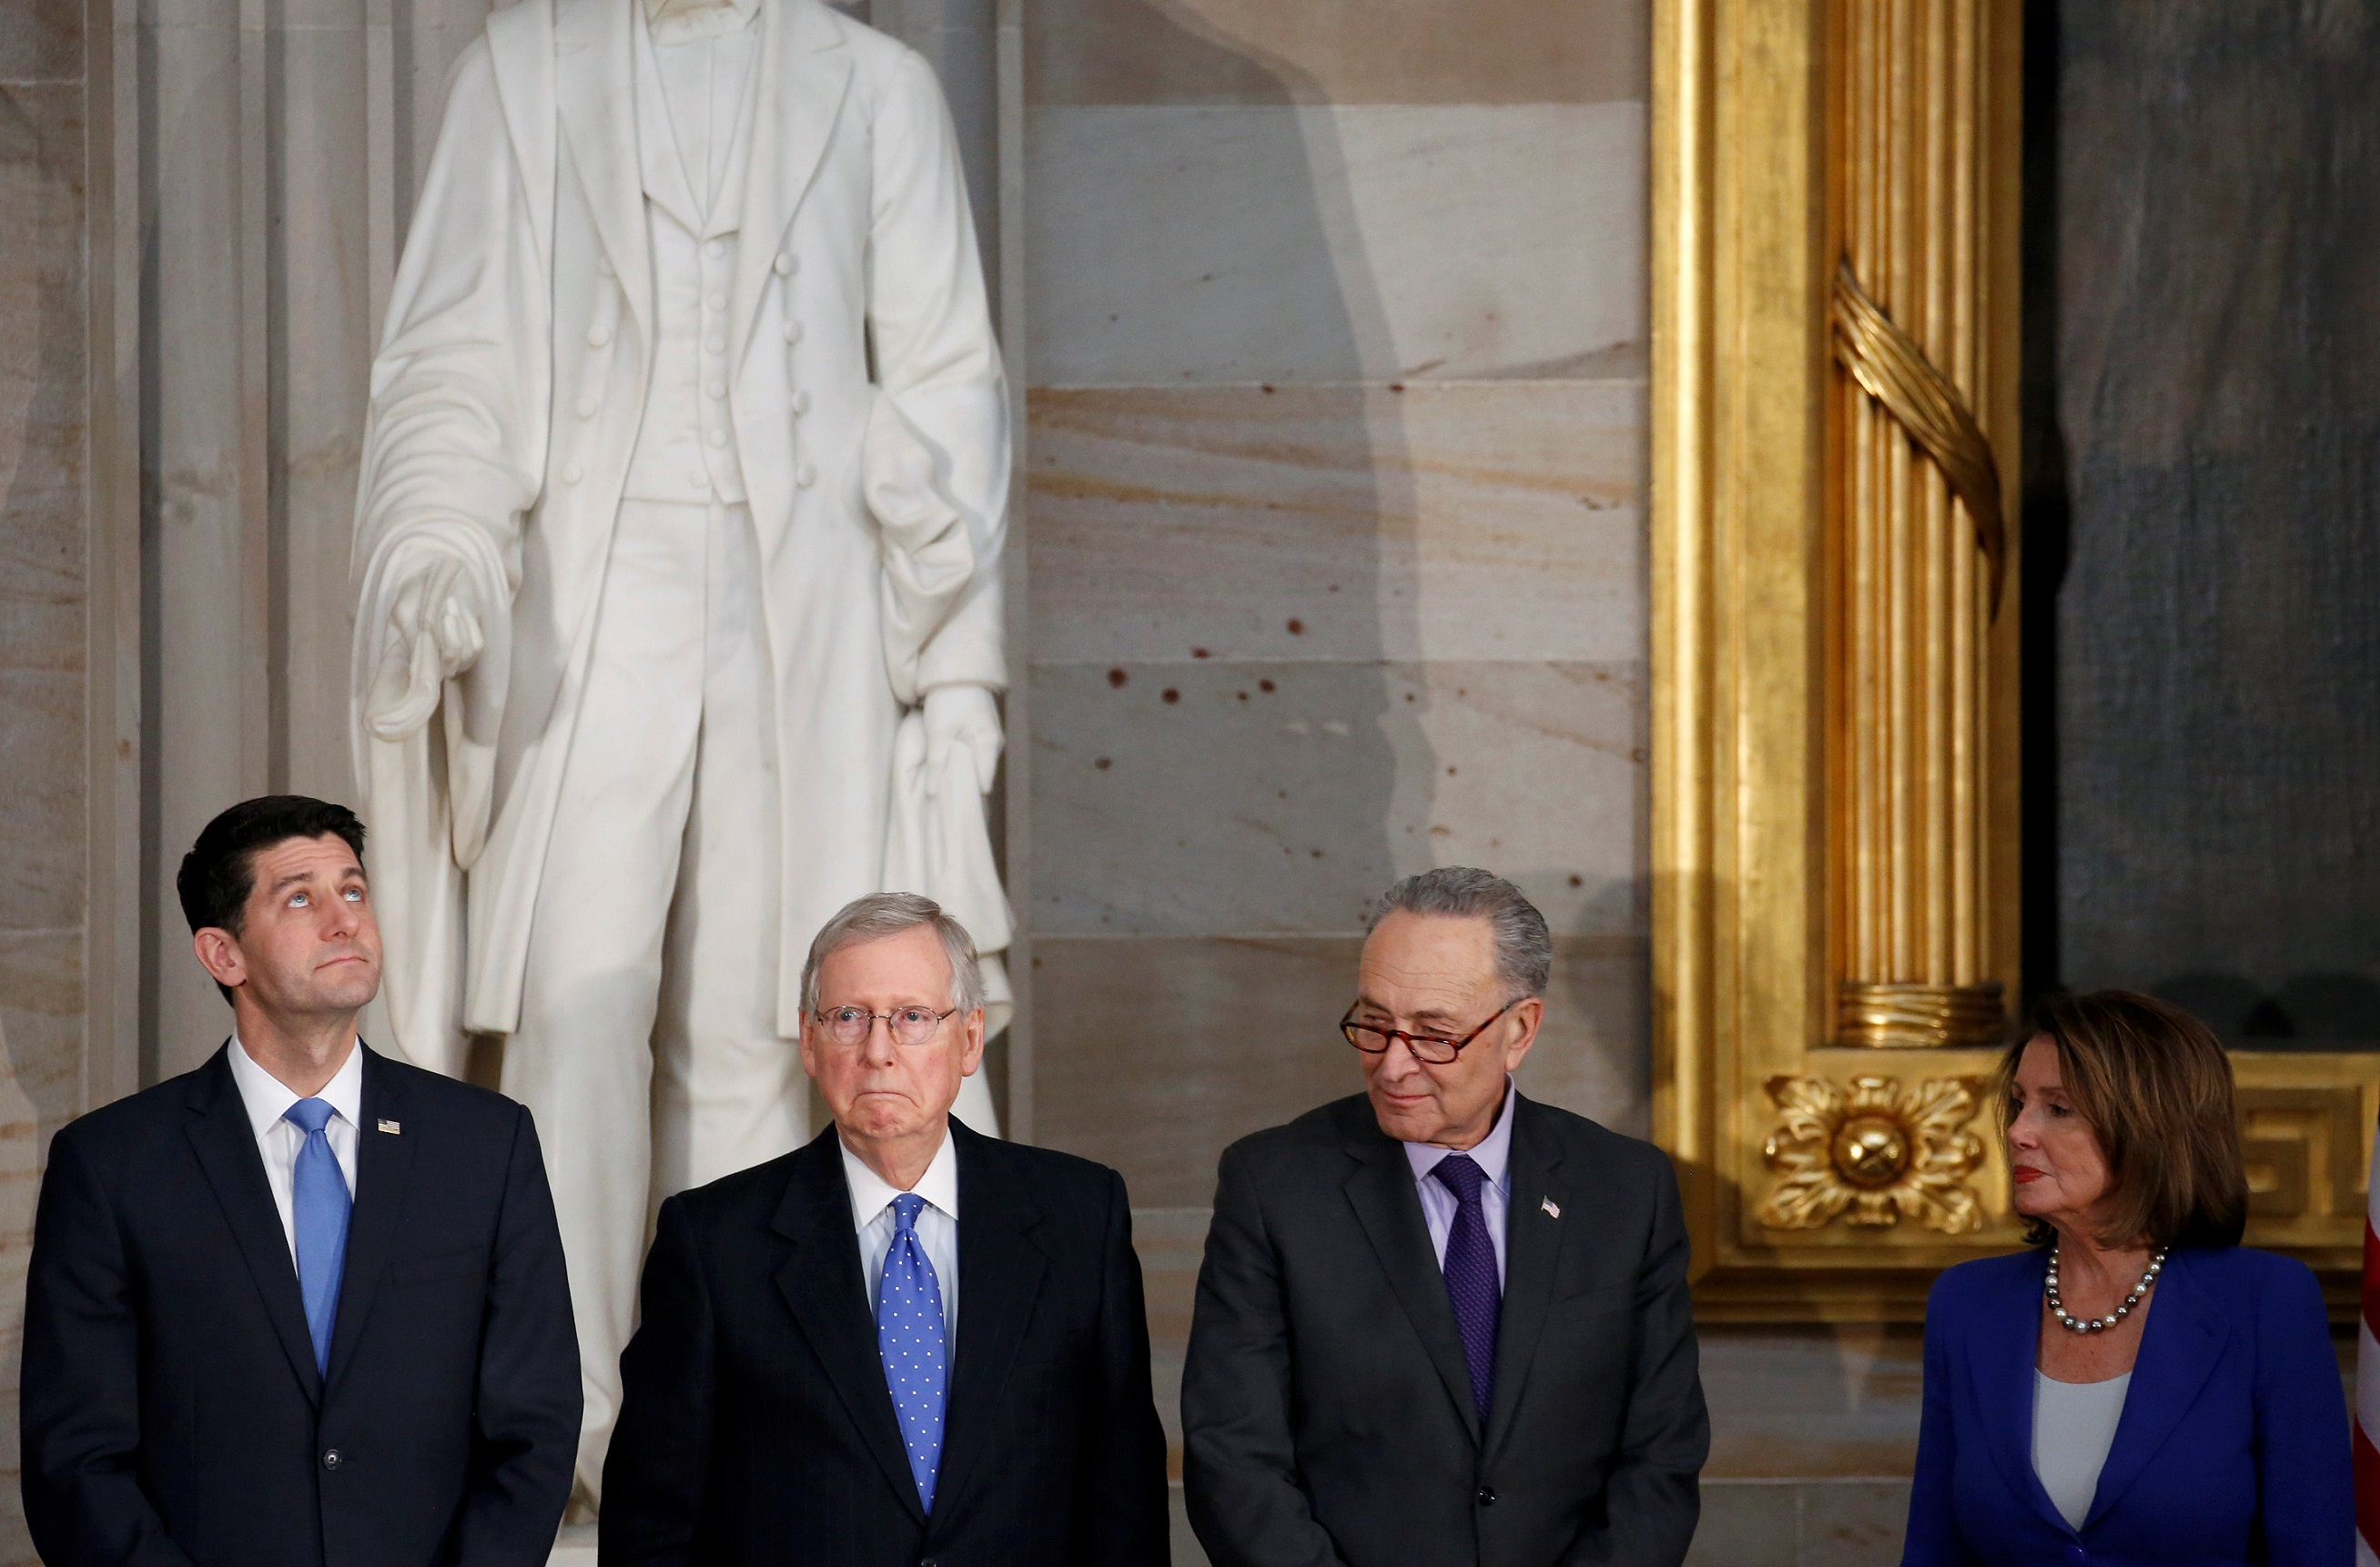 Speaker of the House Paul Ryan (R-WI), Senate Majority Leader Mitch McConnell (R-KY), Senate Minority Leader Chuck Schumer (D-NY) and House Minority Leader Nancy Pelosi (D-CA) stand during a Congressional Gold Medal ceremony honoring former Senate majority leader Bob Dole (R-KS) on Capitol Hill in Washington, U.S., January 17, 2018. REUTERS/Joshua Roberts - RC154A11A3F0